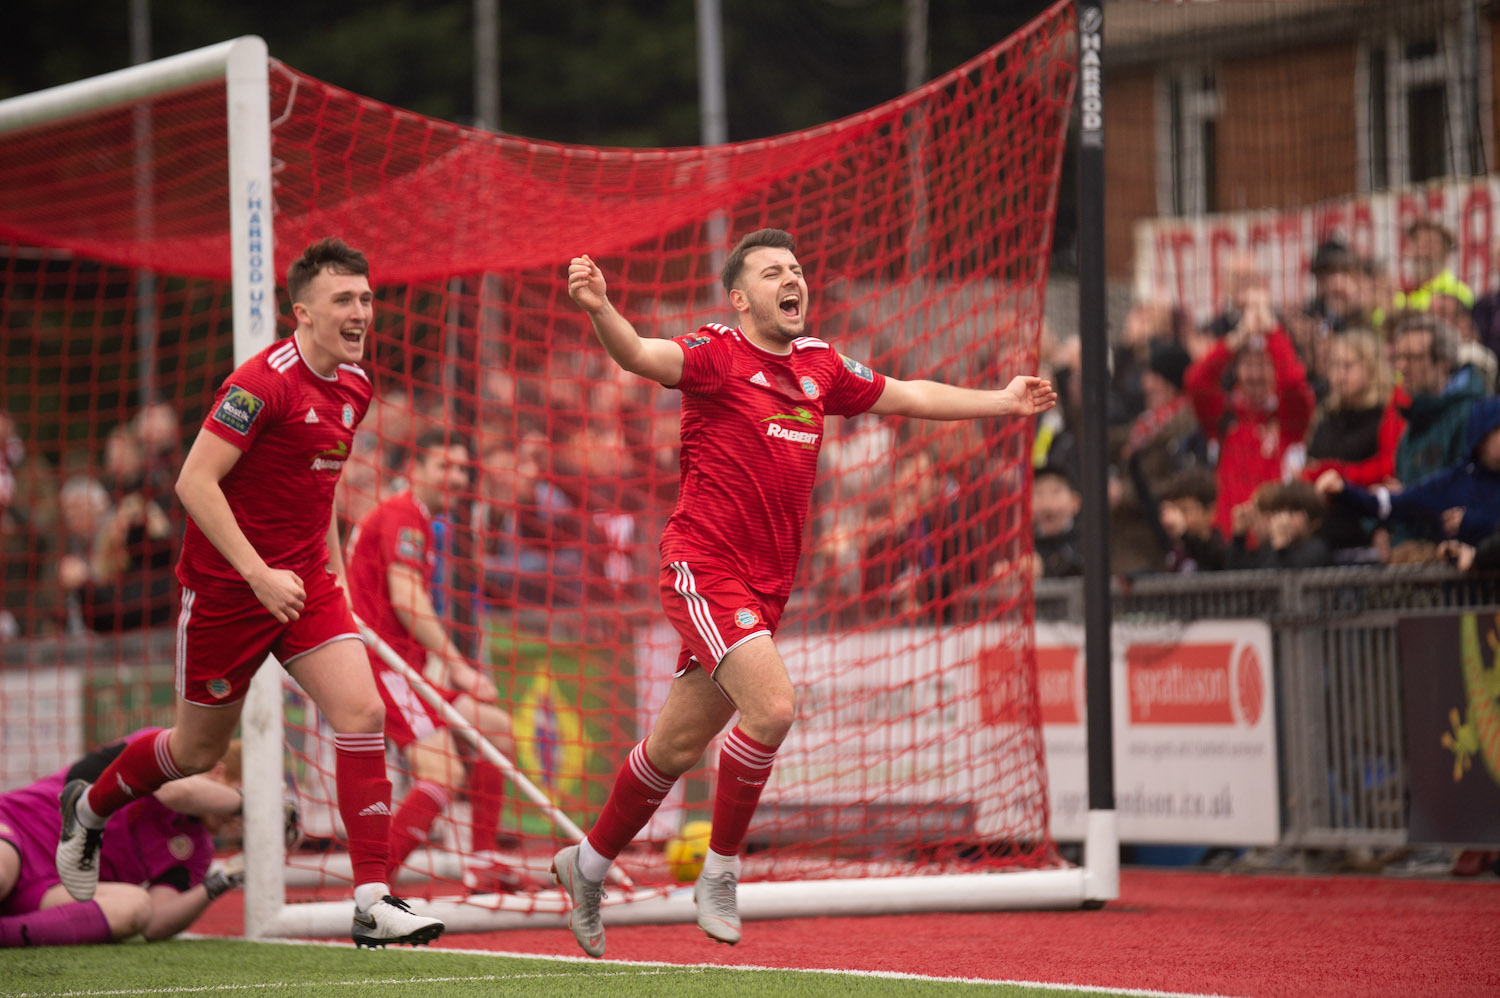 Read the full article - Pearce To The Four As Reds Hammer Hawks